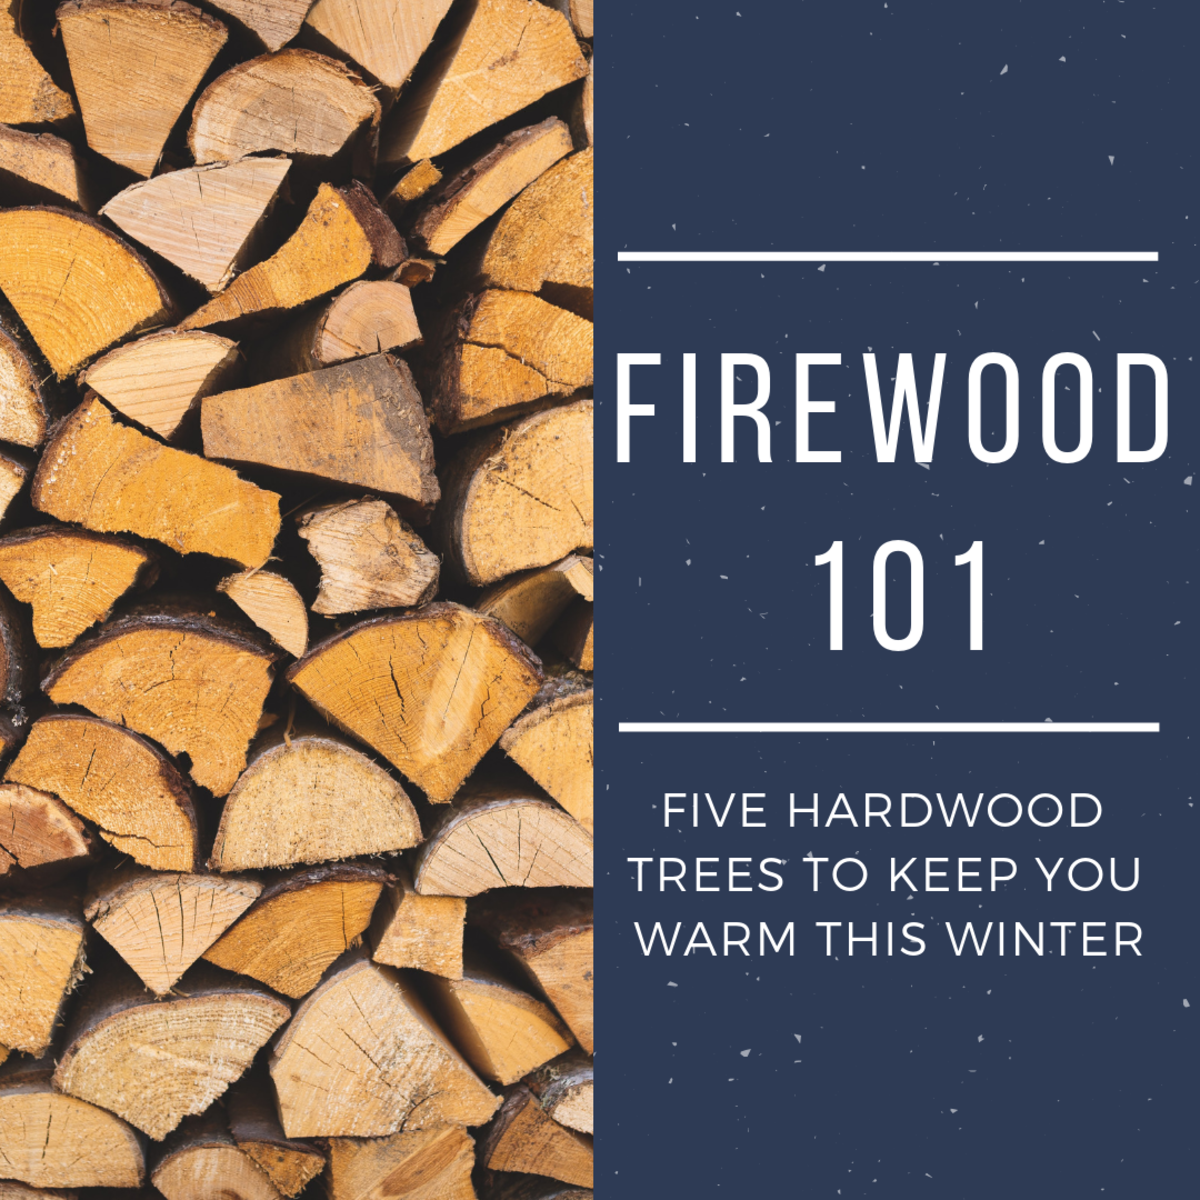 What kind of firewood is best for you, and why?